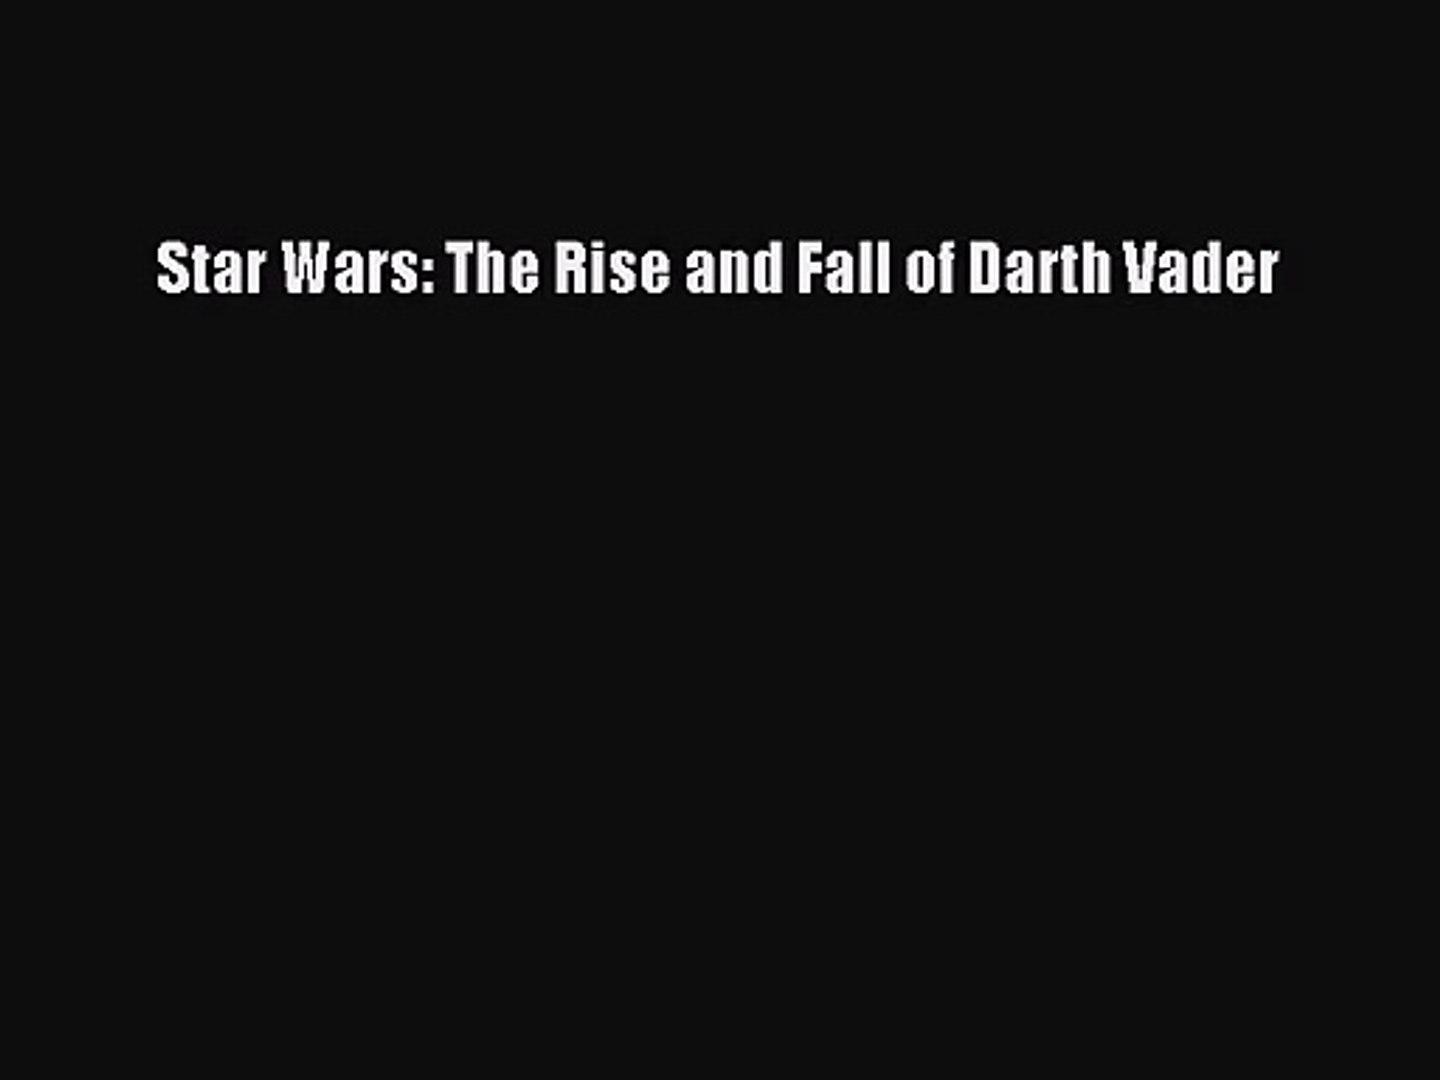 Pdf Read Download Star Wars The Rise And Fall Of Darth Vader Read Full Ebook Video Dailymotion